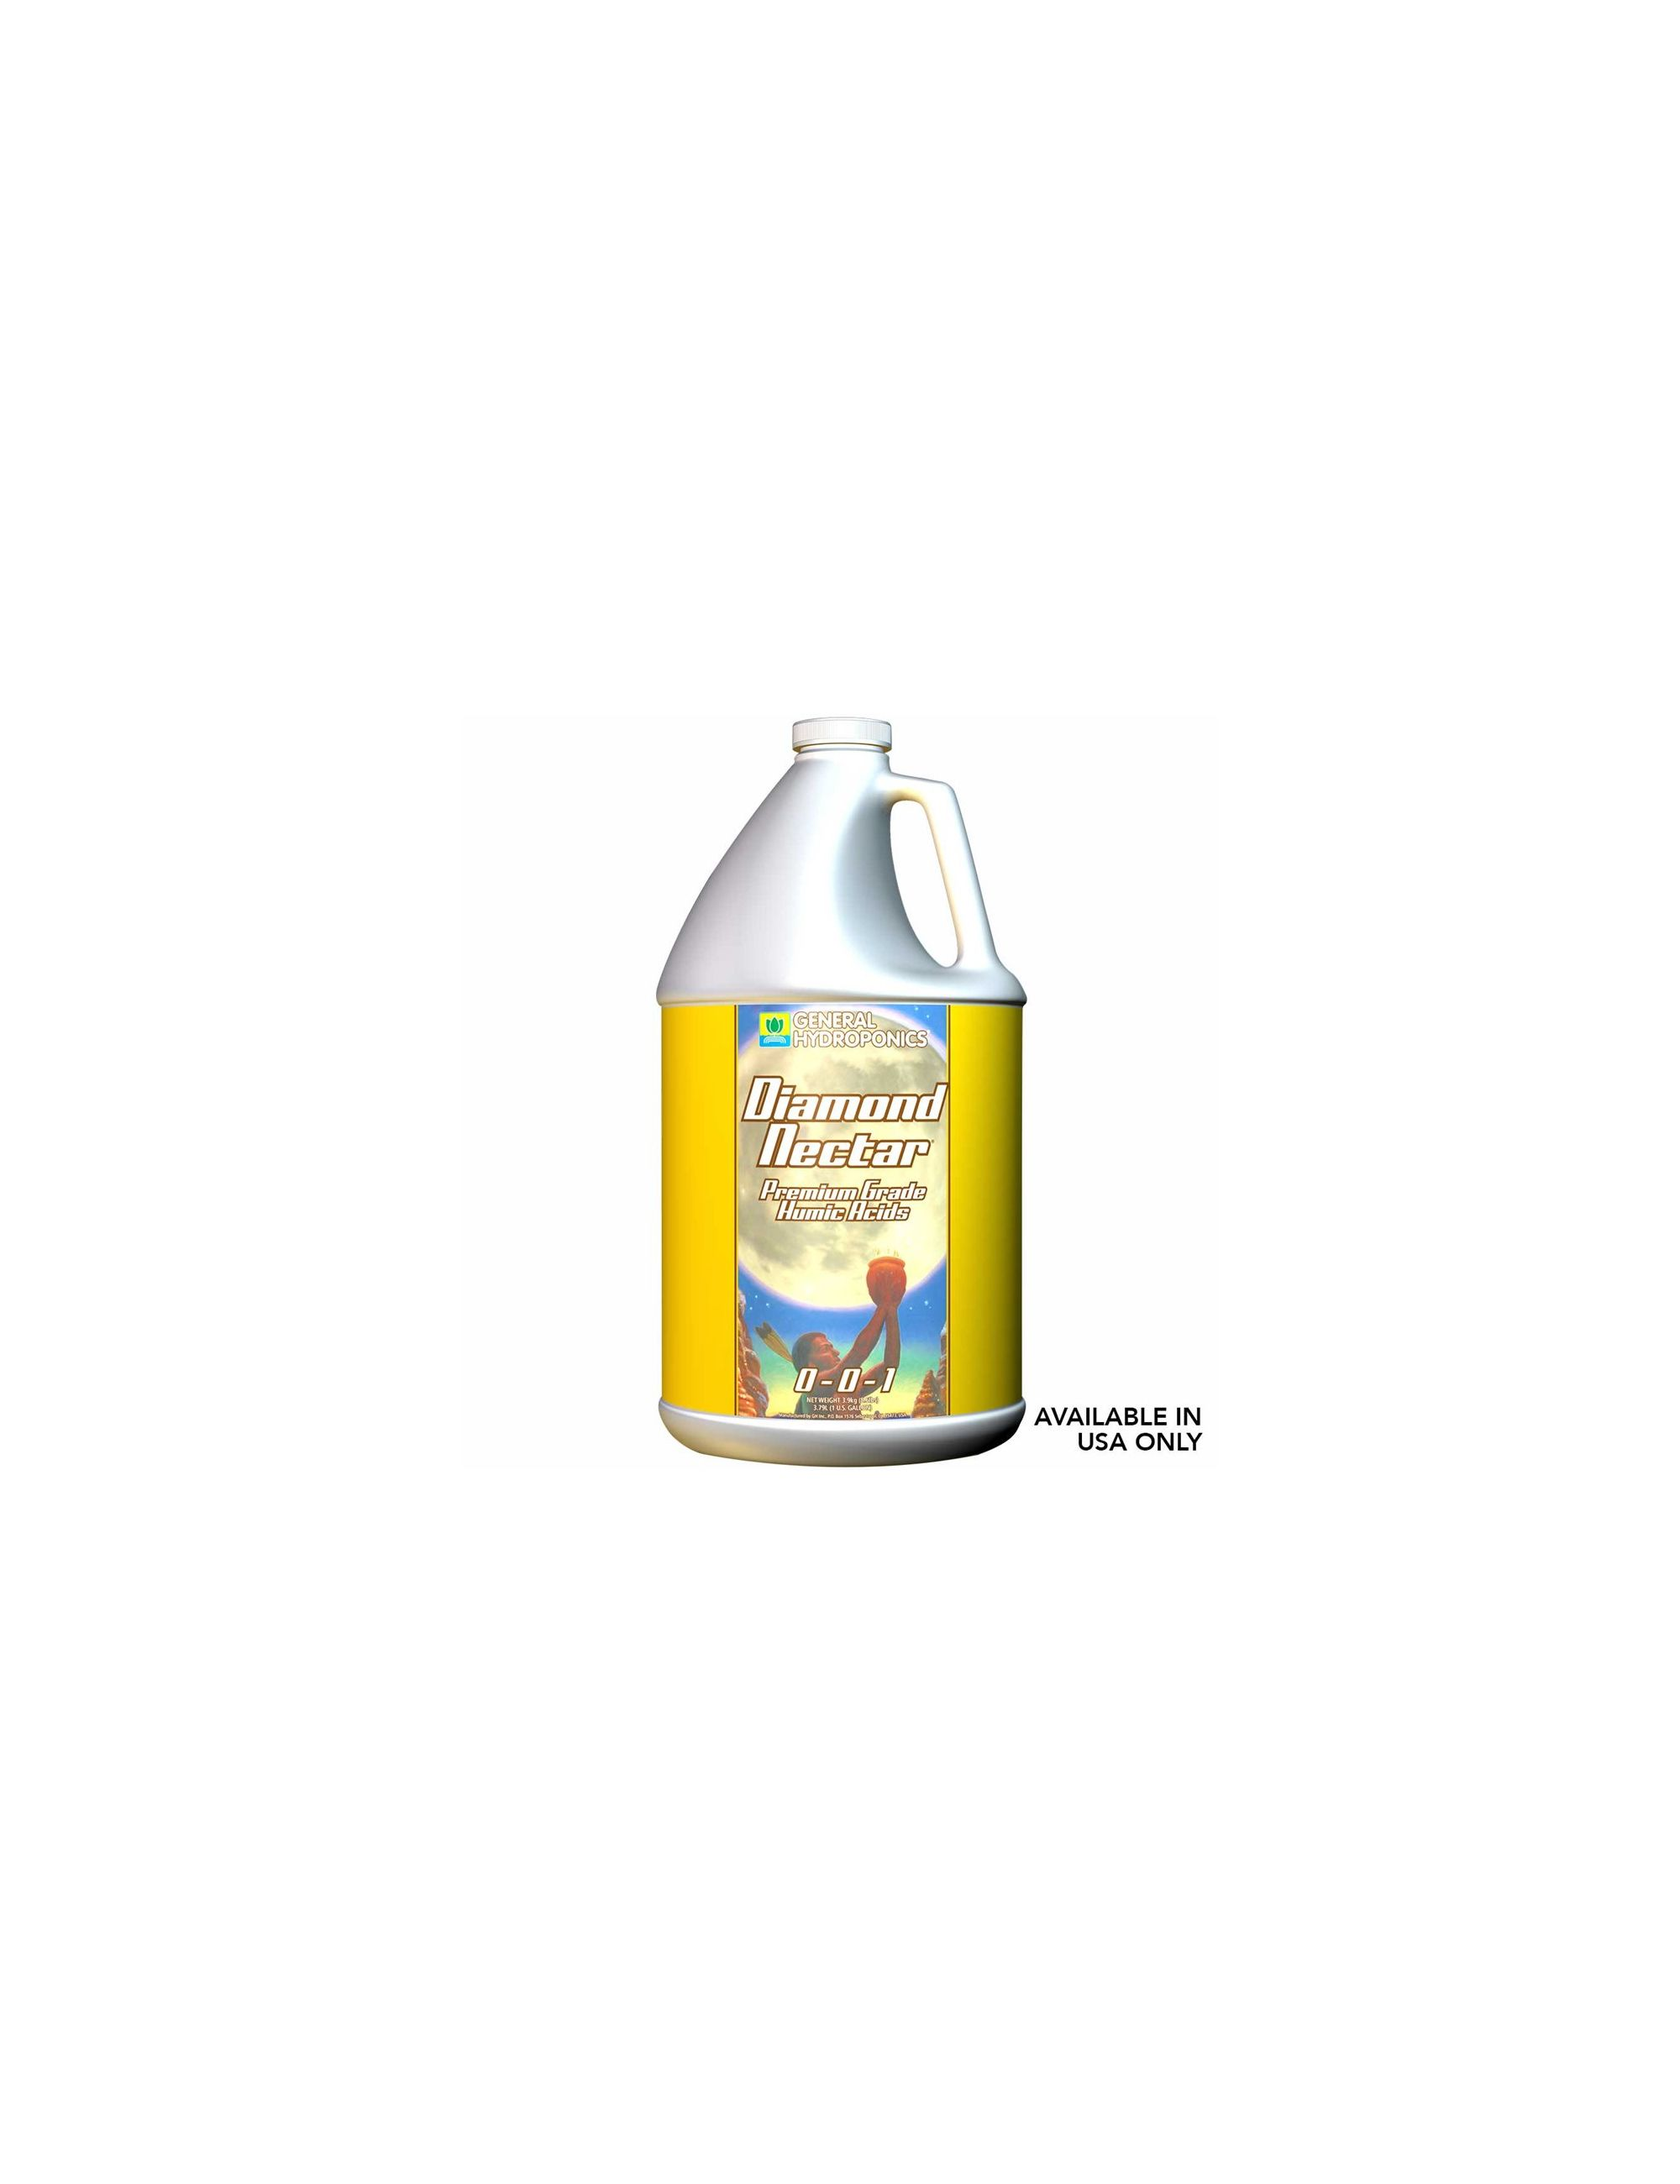 DIAMOND NECTAR 1 GALLON